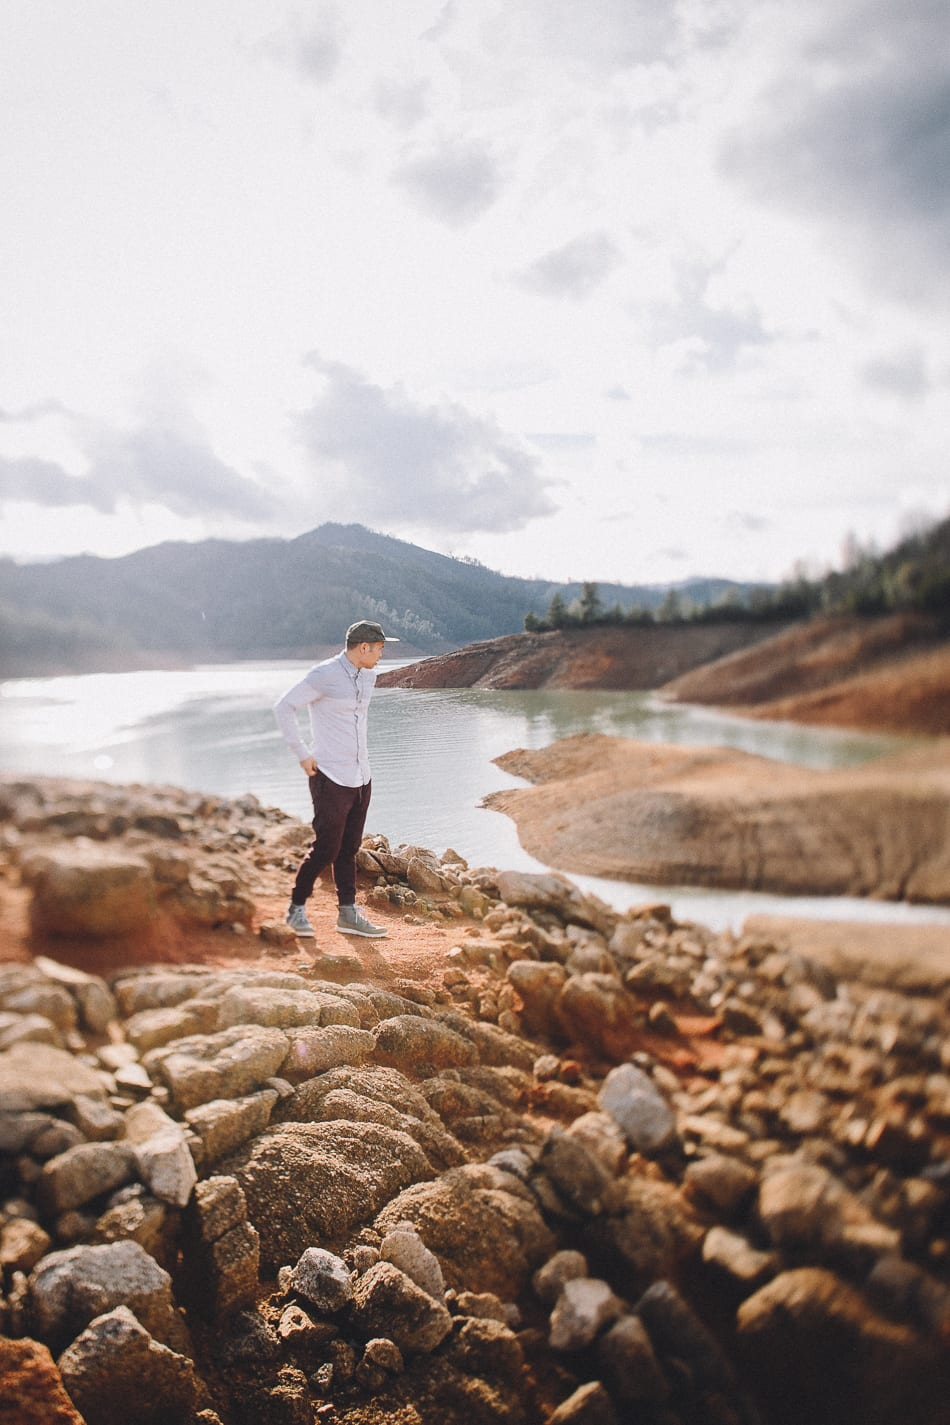 shasta-lake-portrait-lifestyle-photo-8